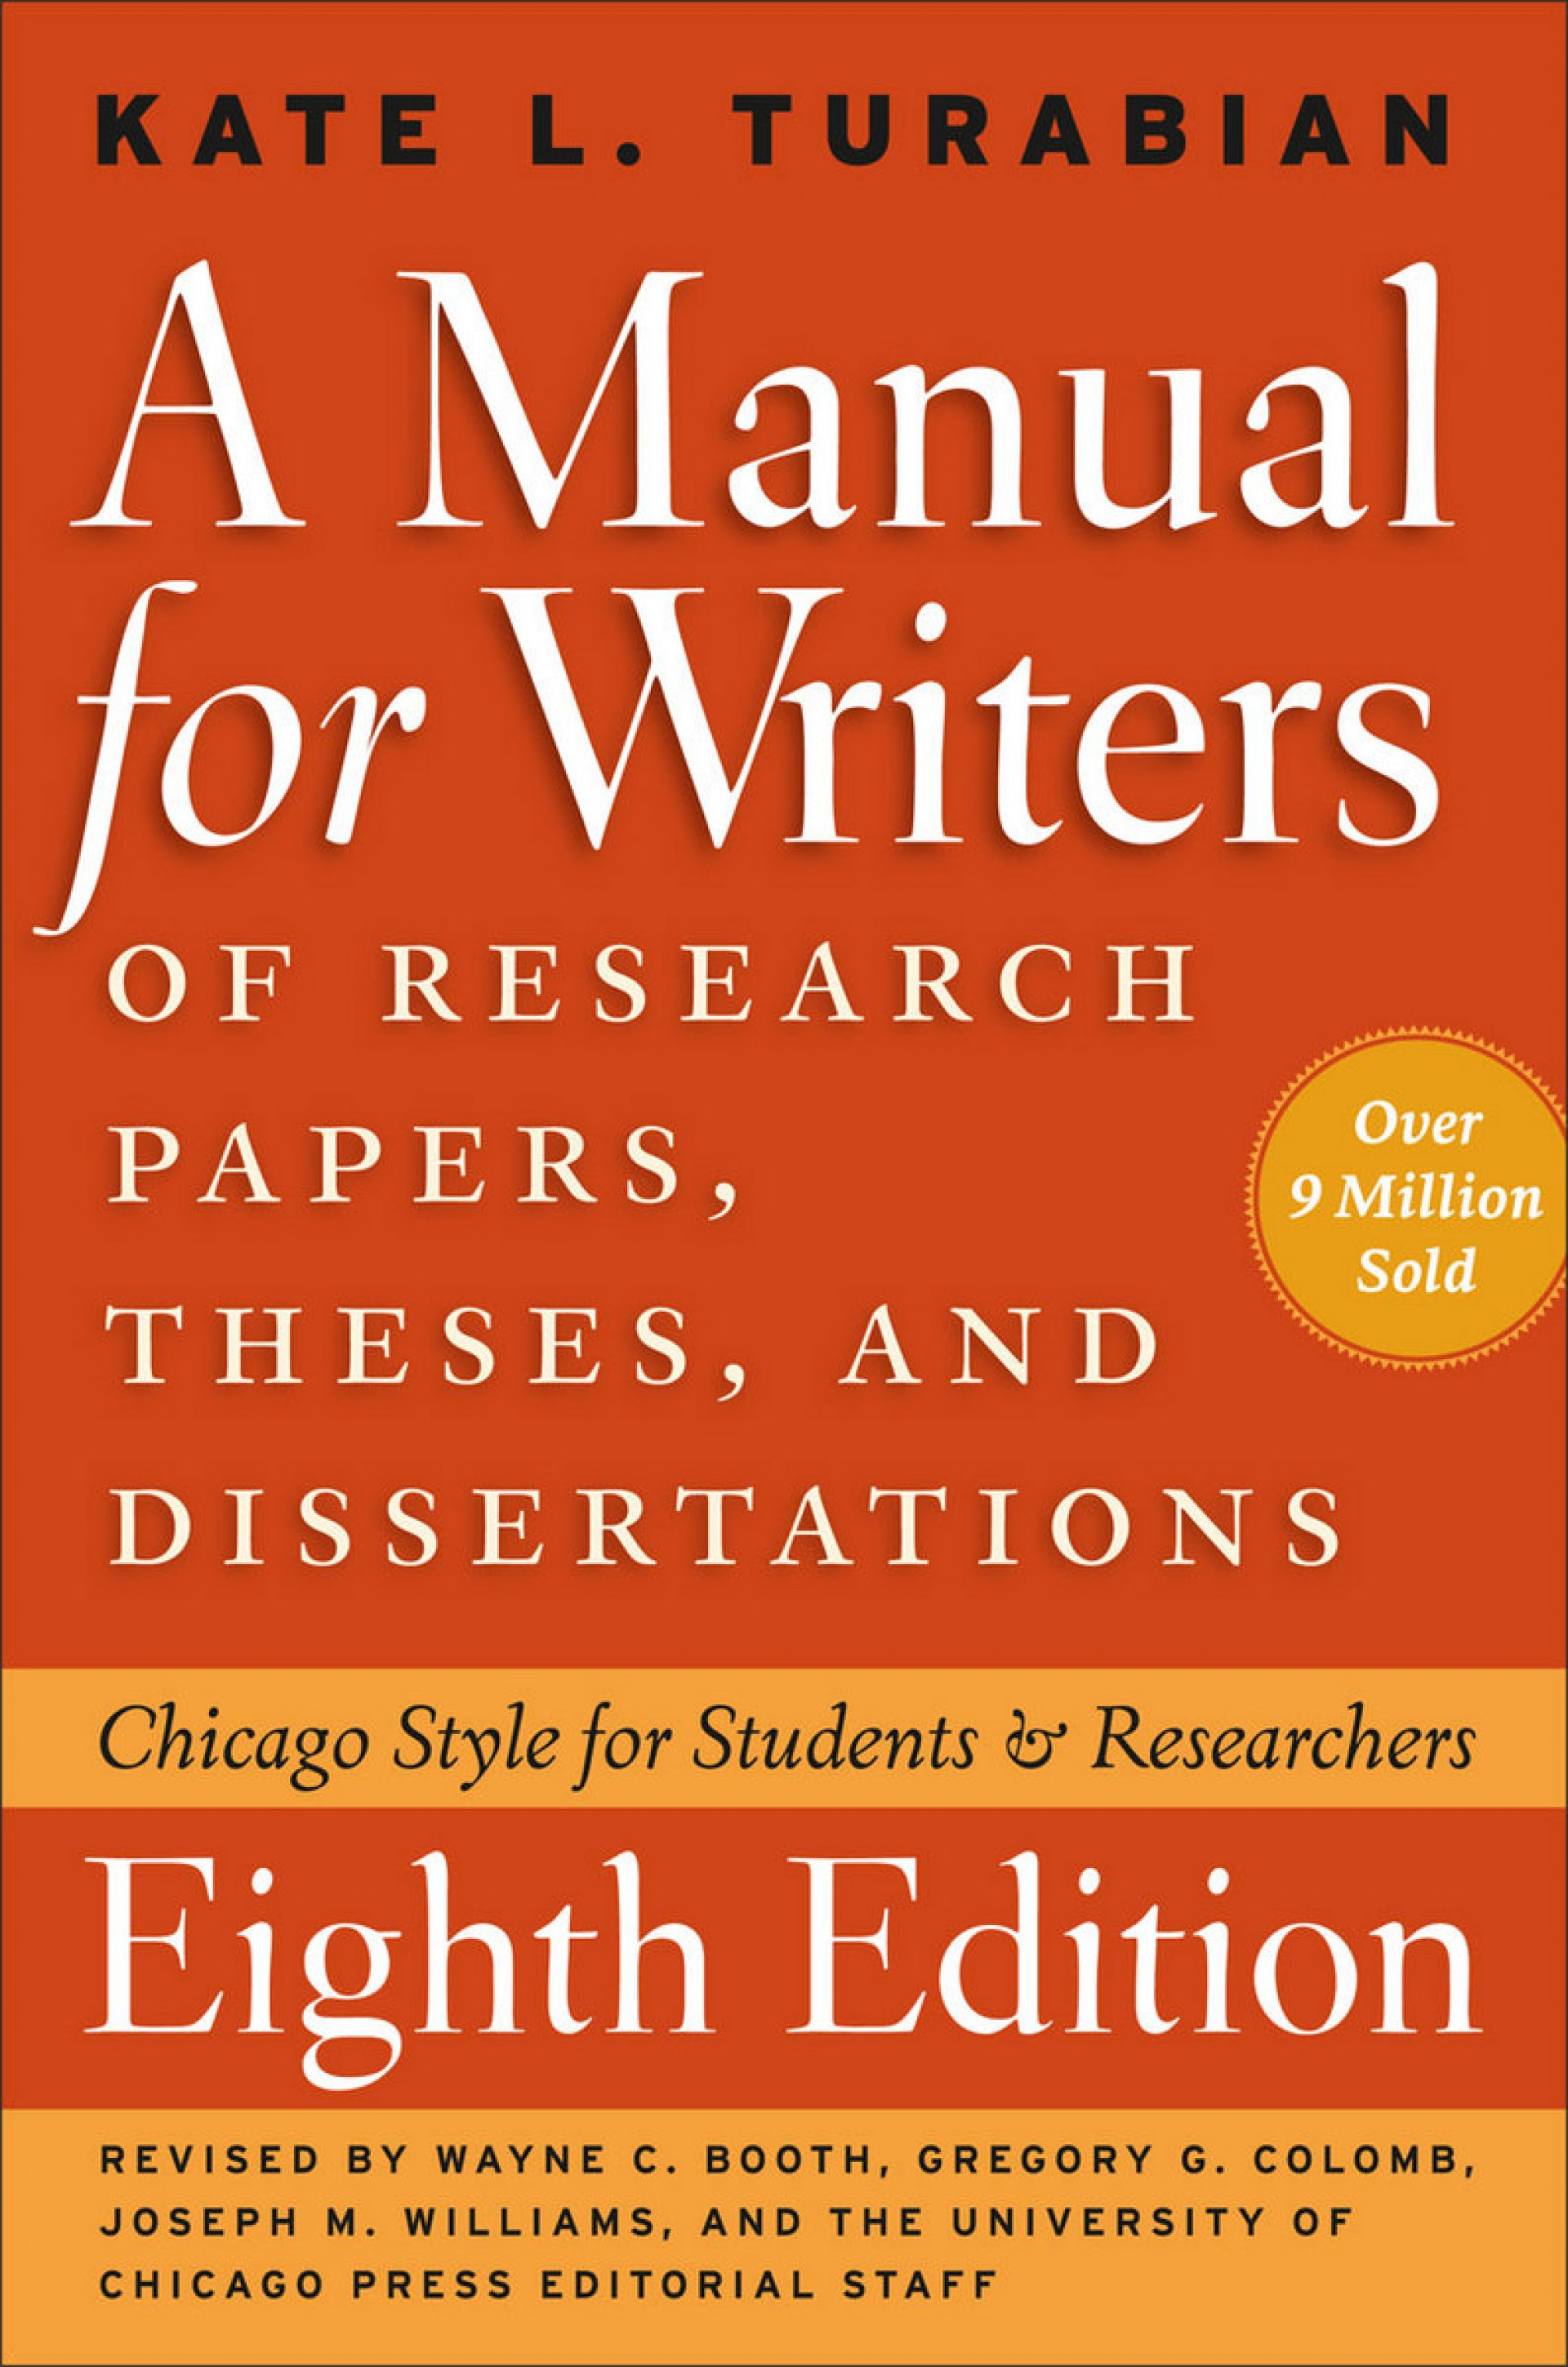 002 Research Paper Frontcover Manual For Writers Of Papers Theses And Dissertations Fearsome A Ed 8 1920